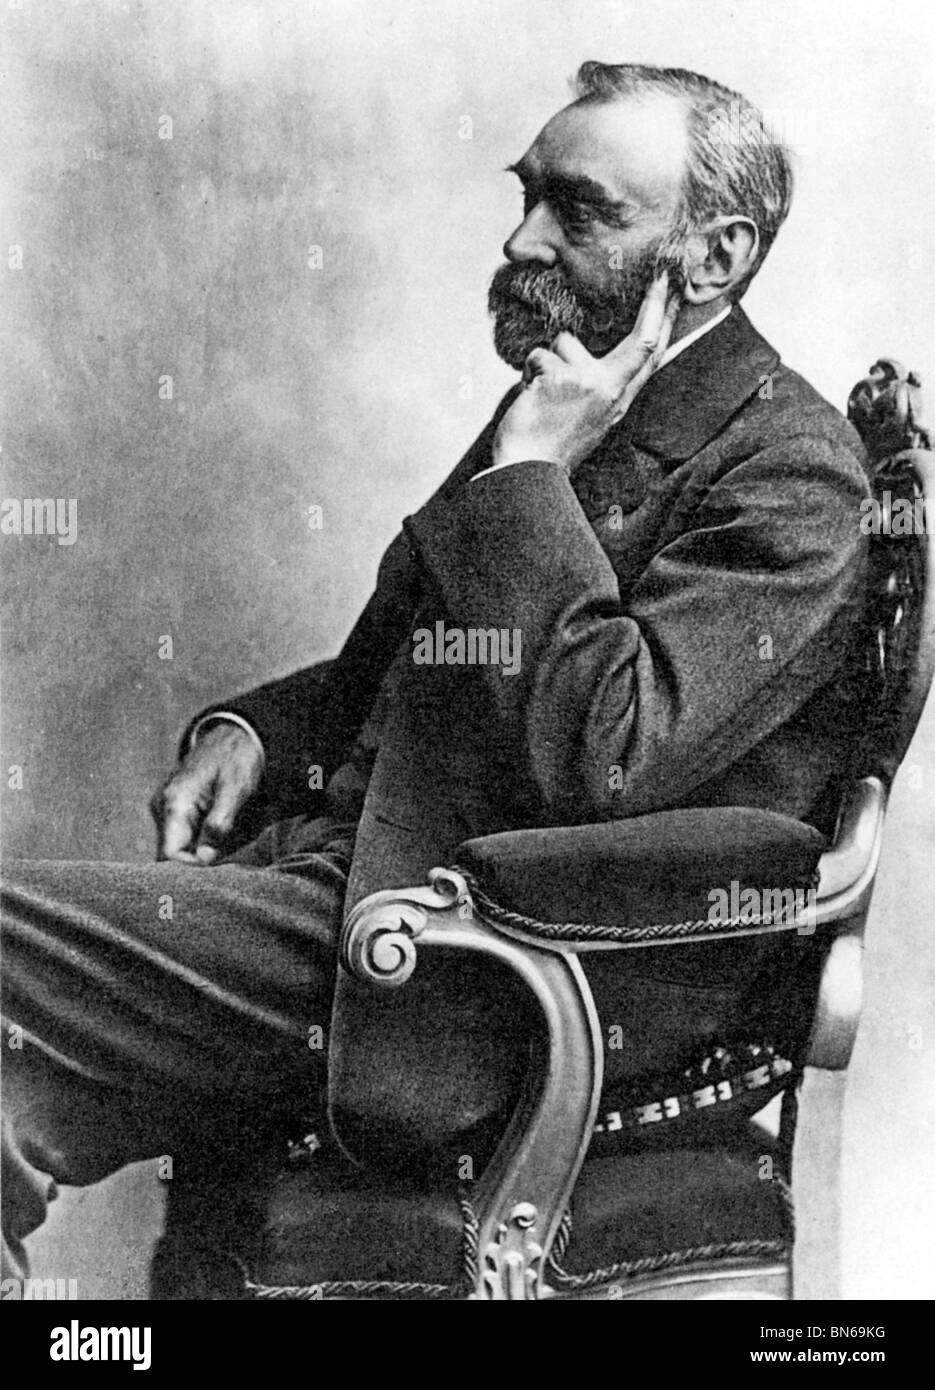 Alfred Nobel, 1833-1896, portrait of the Swedish industrialist, inventor of dynamite, and father of the Nobel foundation - Stock Image